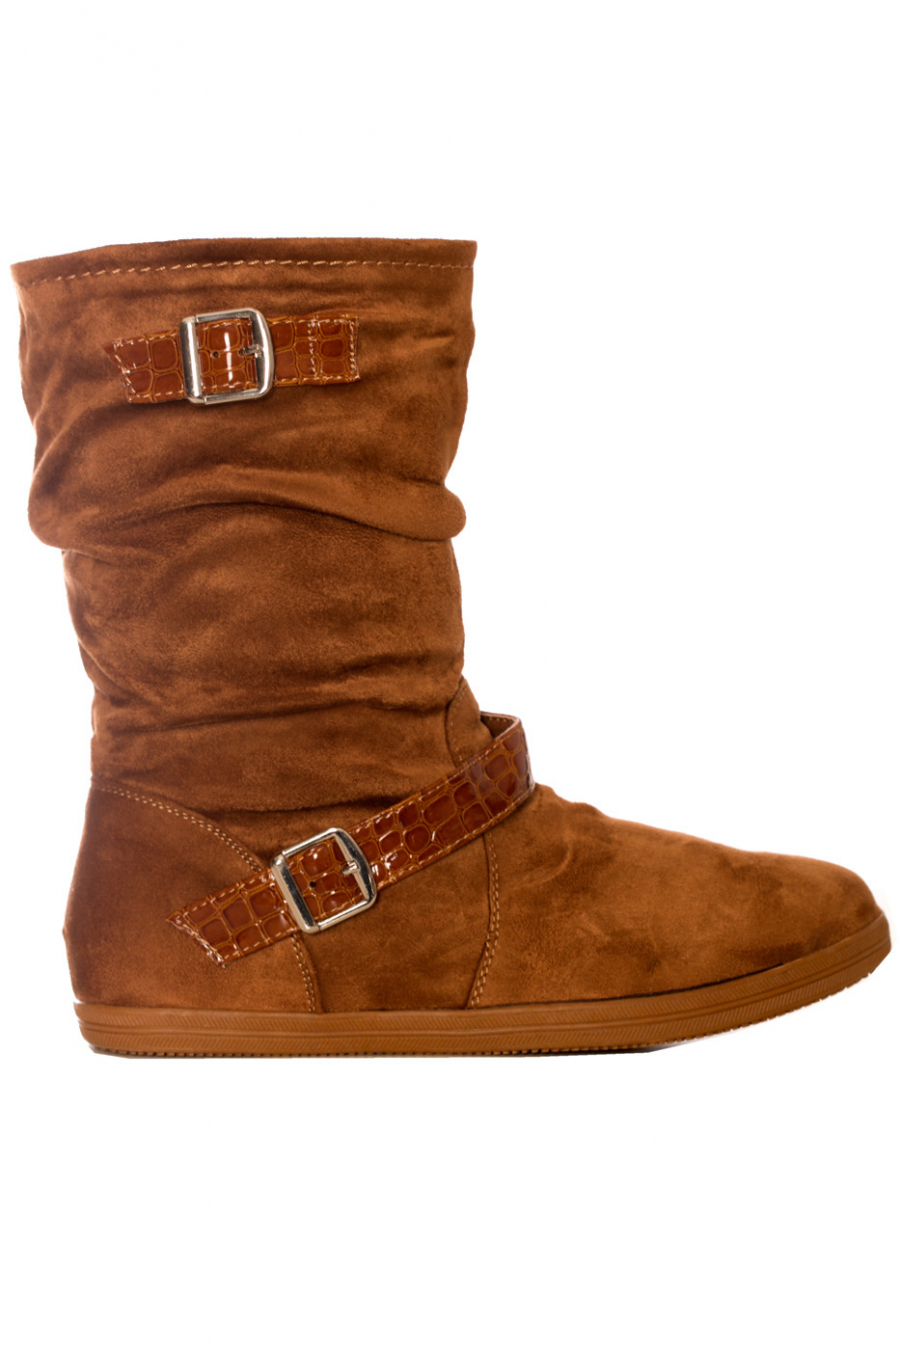 Camel imitation suede boot with buckle. EL511-1